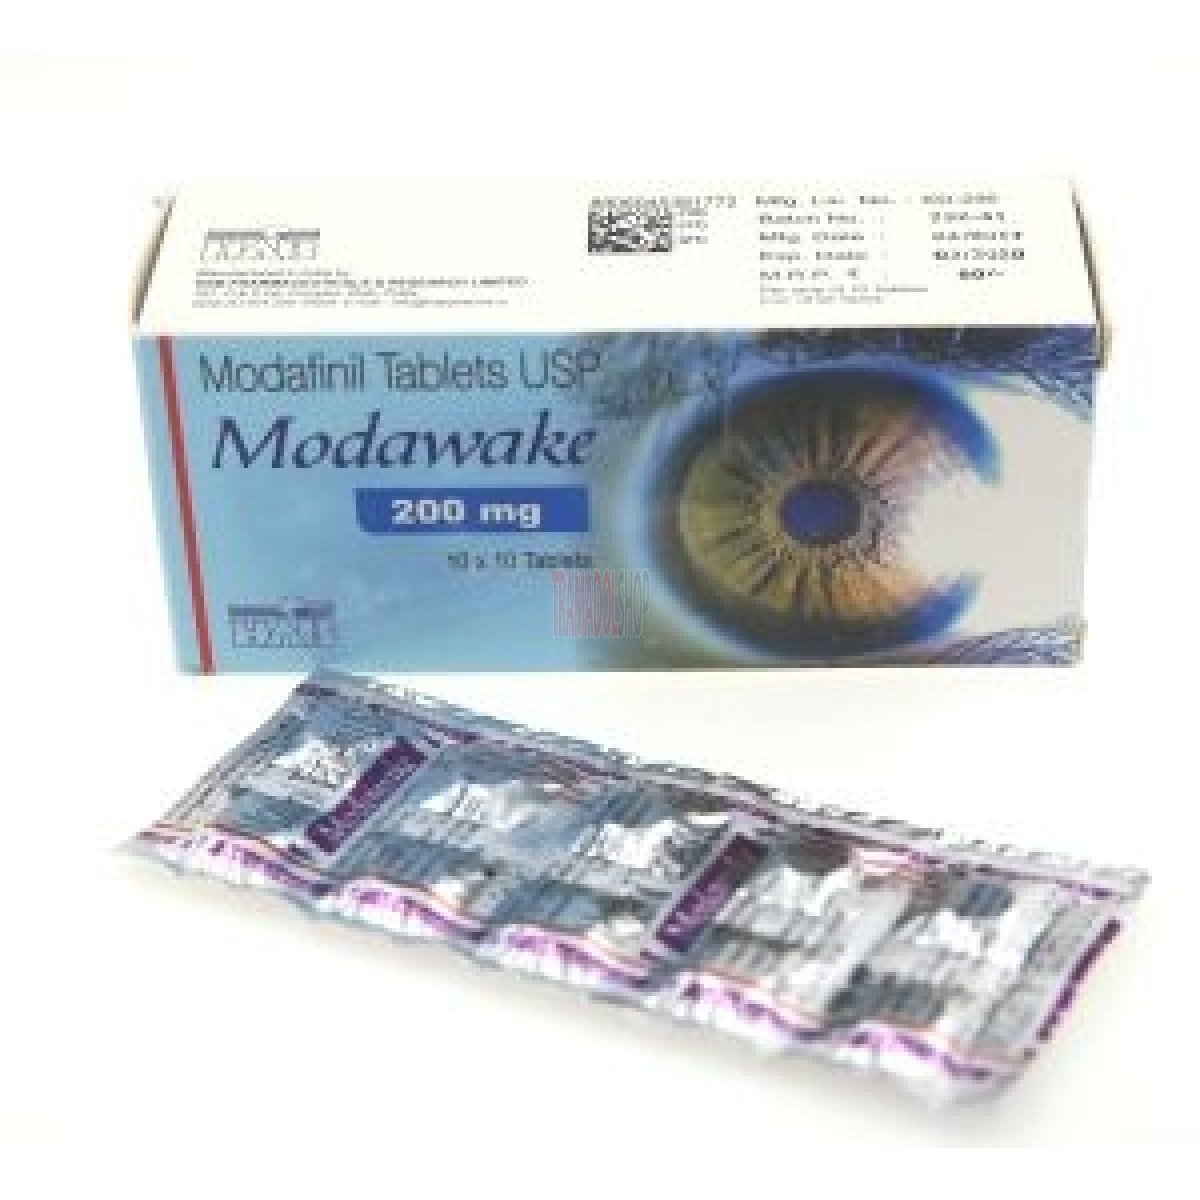 Buy Modawake 200mg (Modafinil) Online in USA at best Rate | Buy Now ▶